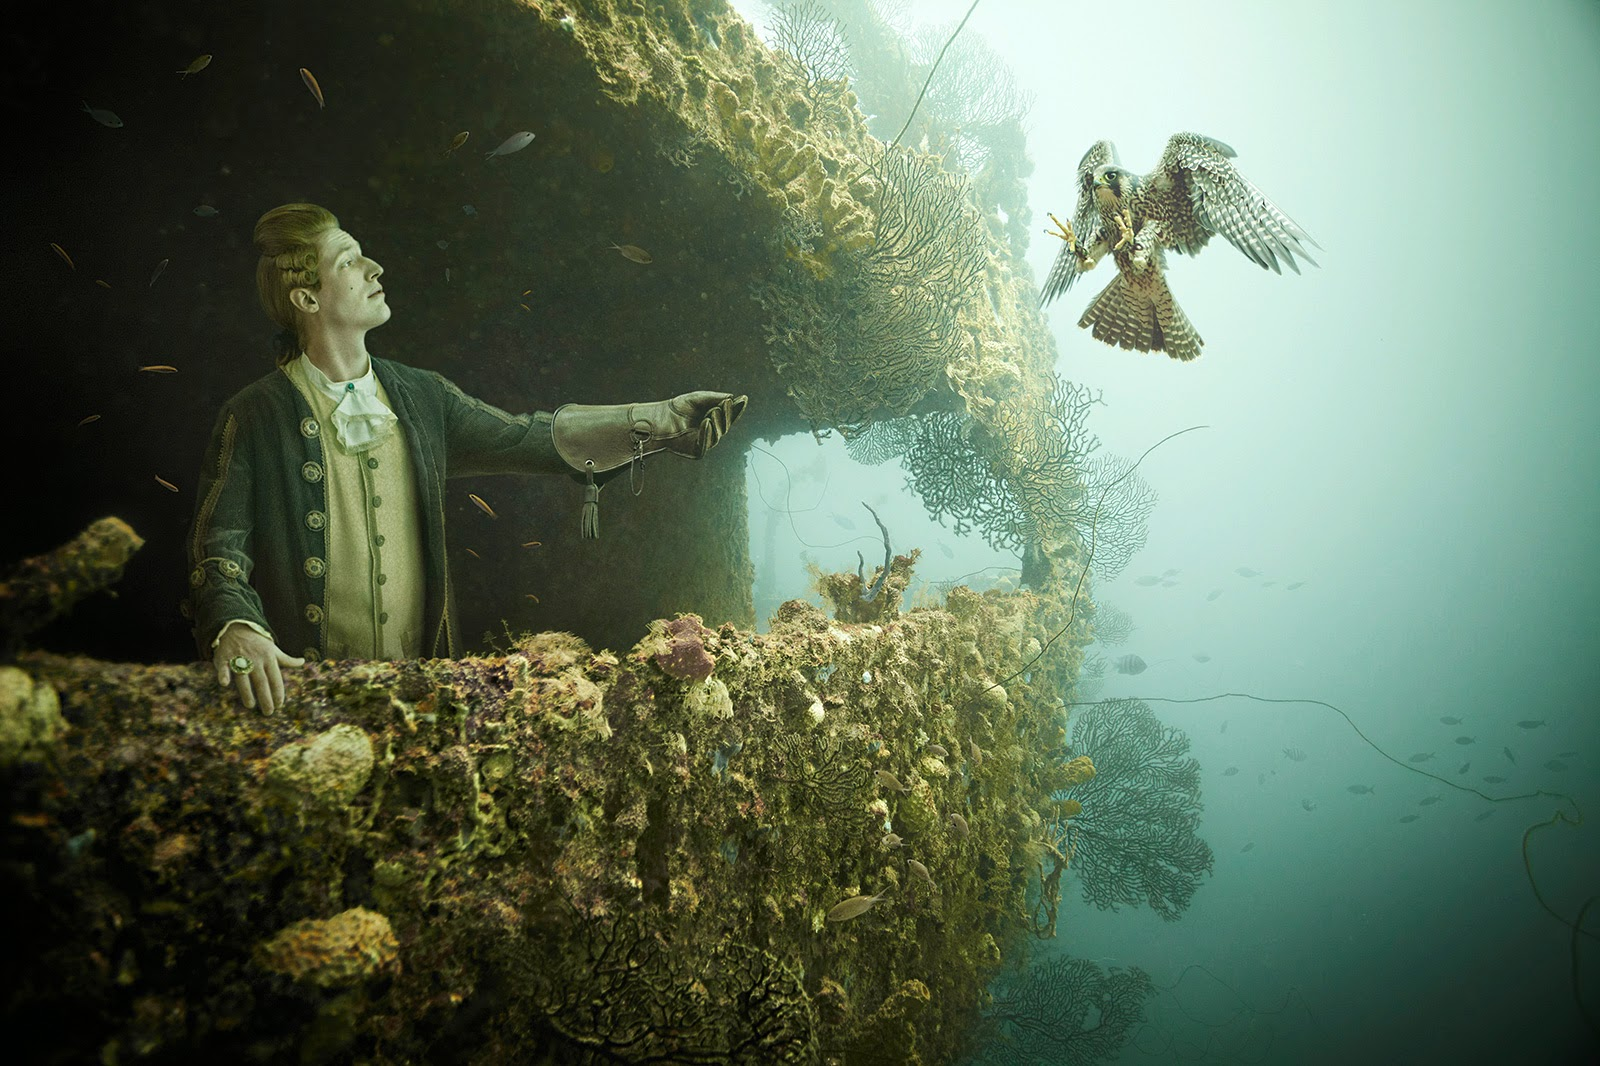 09-Andreas-Franke-Surreal-Artificial-Reef-Photography-www-designstack-co